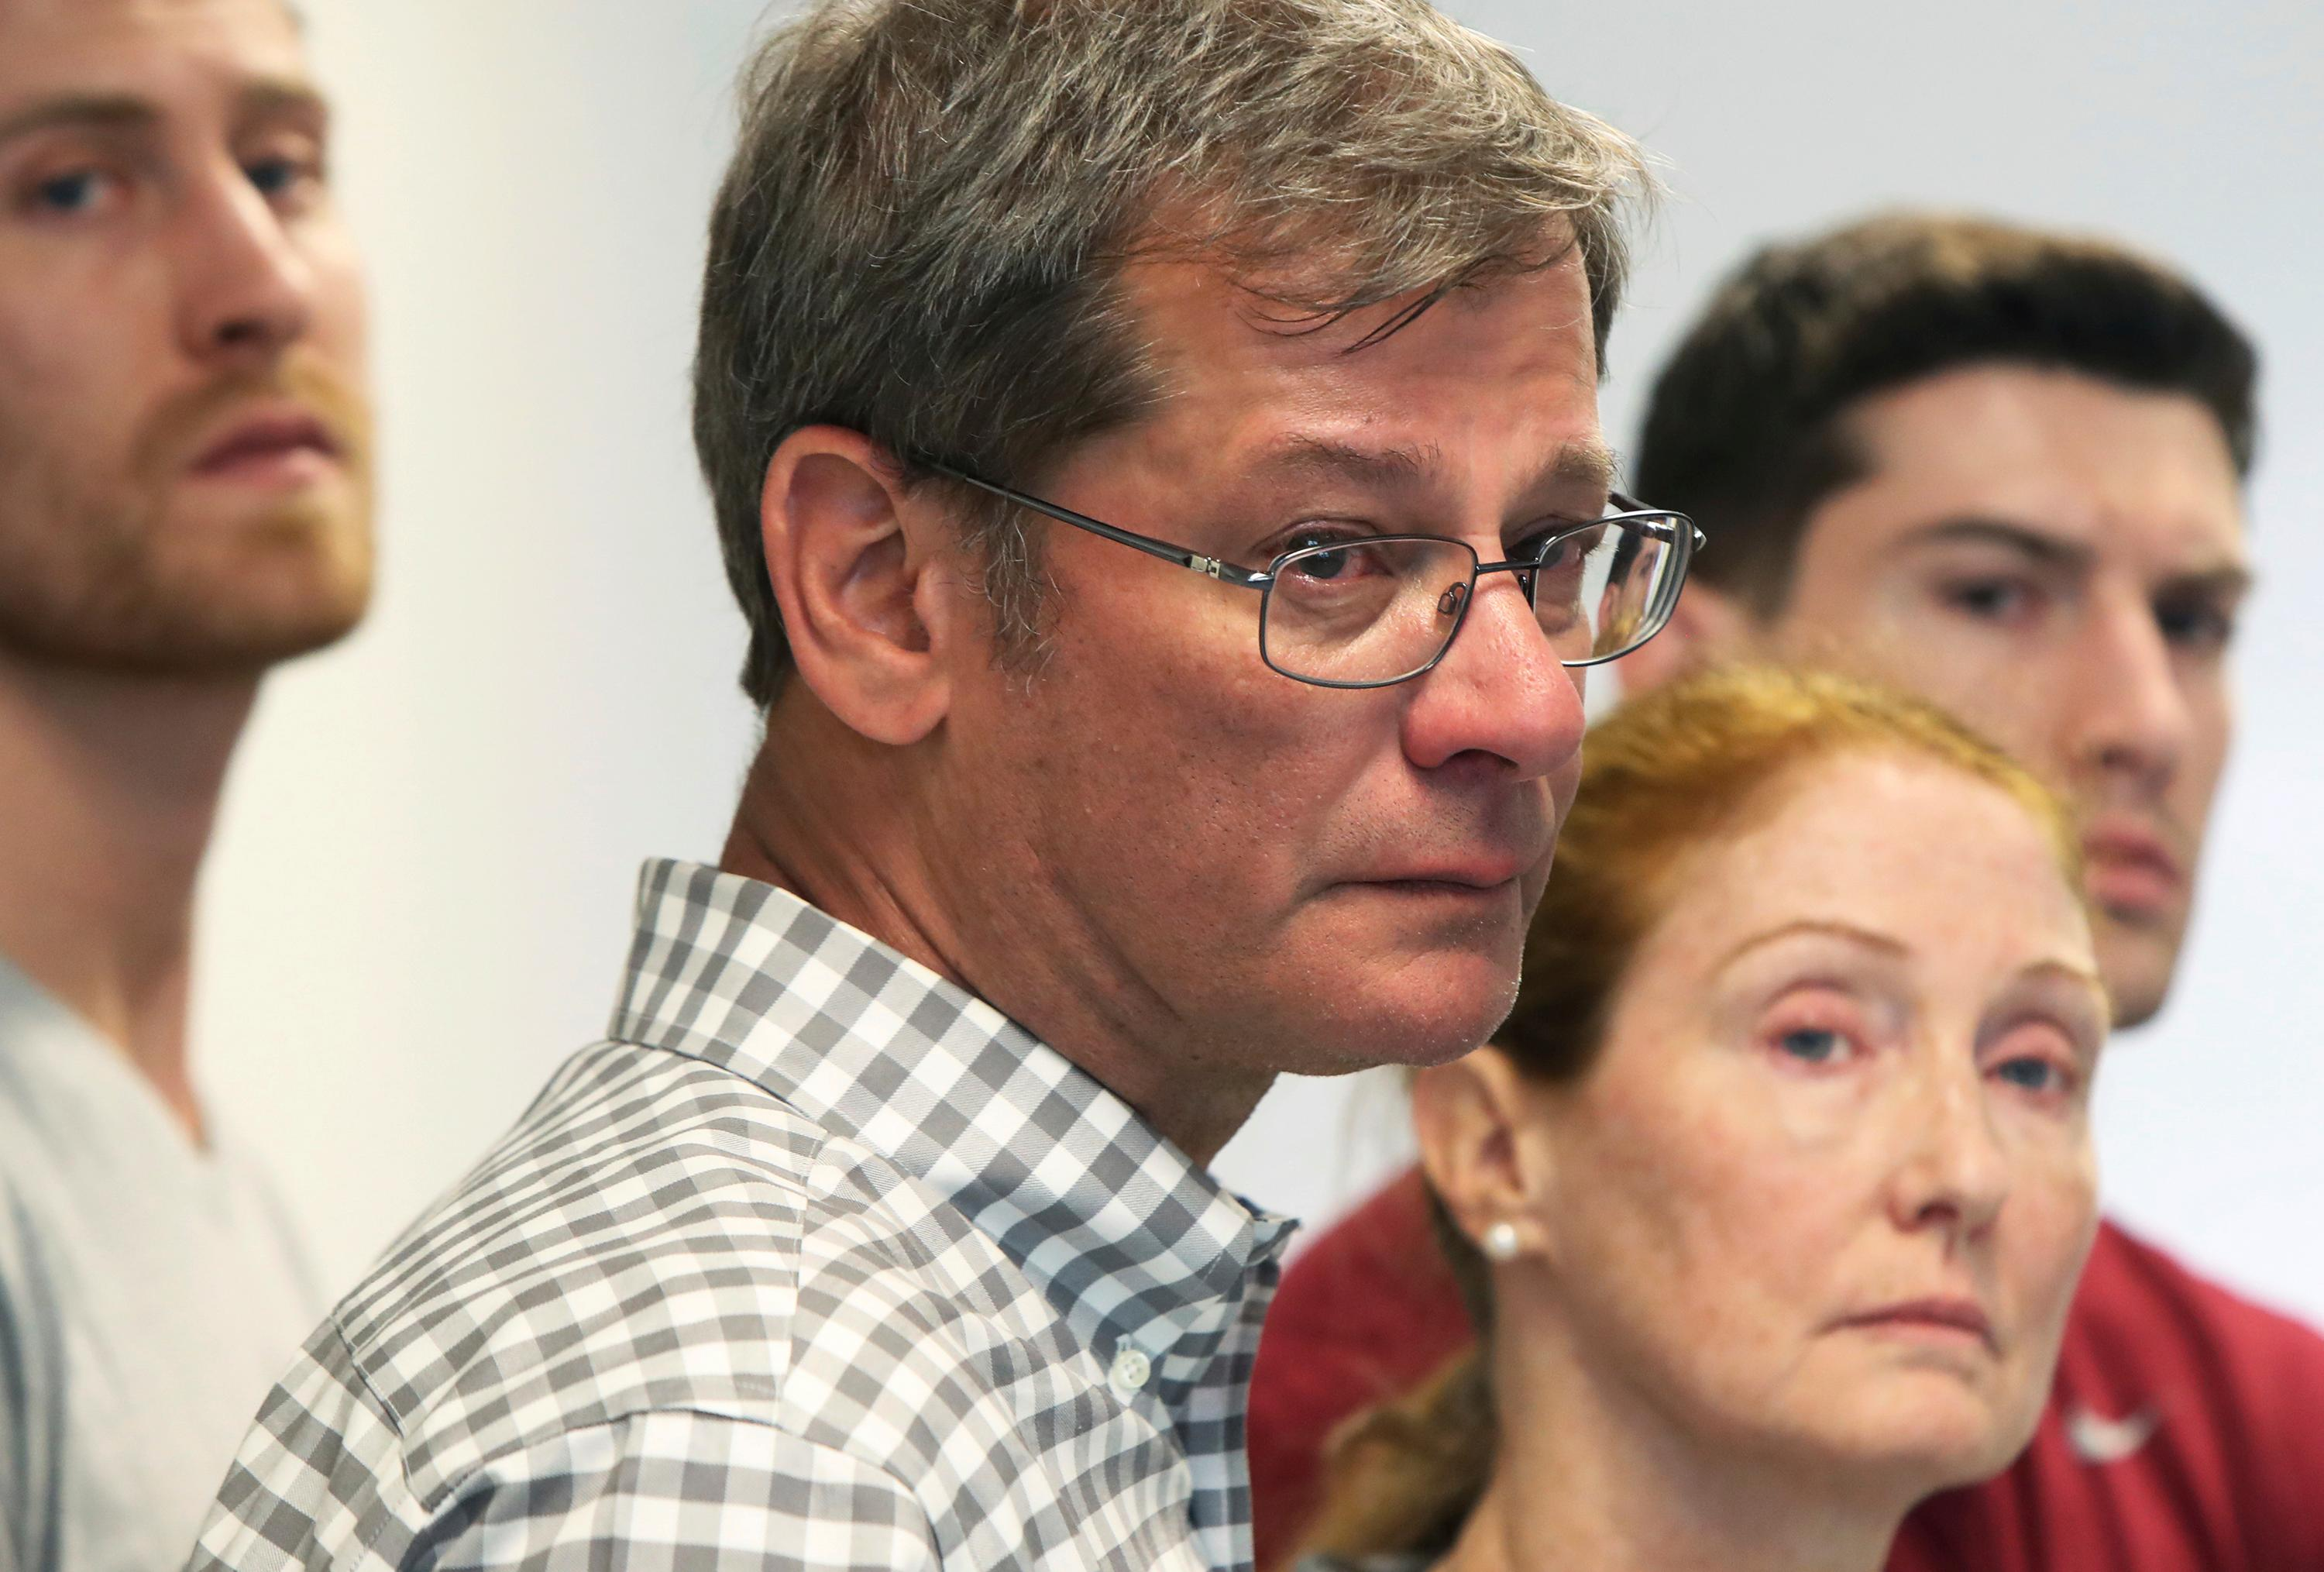 Parents John and Lisa Dombroski, center, stand with their sons John, left, and Kevin, right, during a press conference regarding their missing son and brother Mark, at the Hamilton Police Station in Hamilton, Bermuda, Monday, March 19, 2018. Mark Dombroski, 19, a member of the rugby team at Saint Joseph's University in Philadelphia, disappeared early Sunday after a night of socializing at the end of an international rugby tournament. (Blaire Simmons/The Royal Gazette via AP)